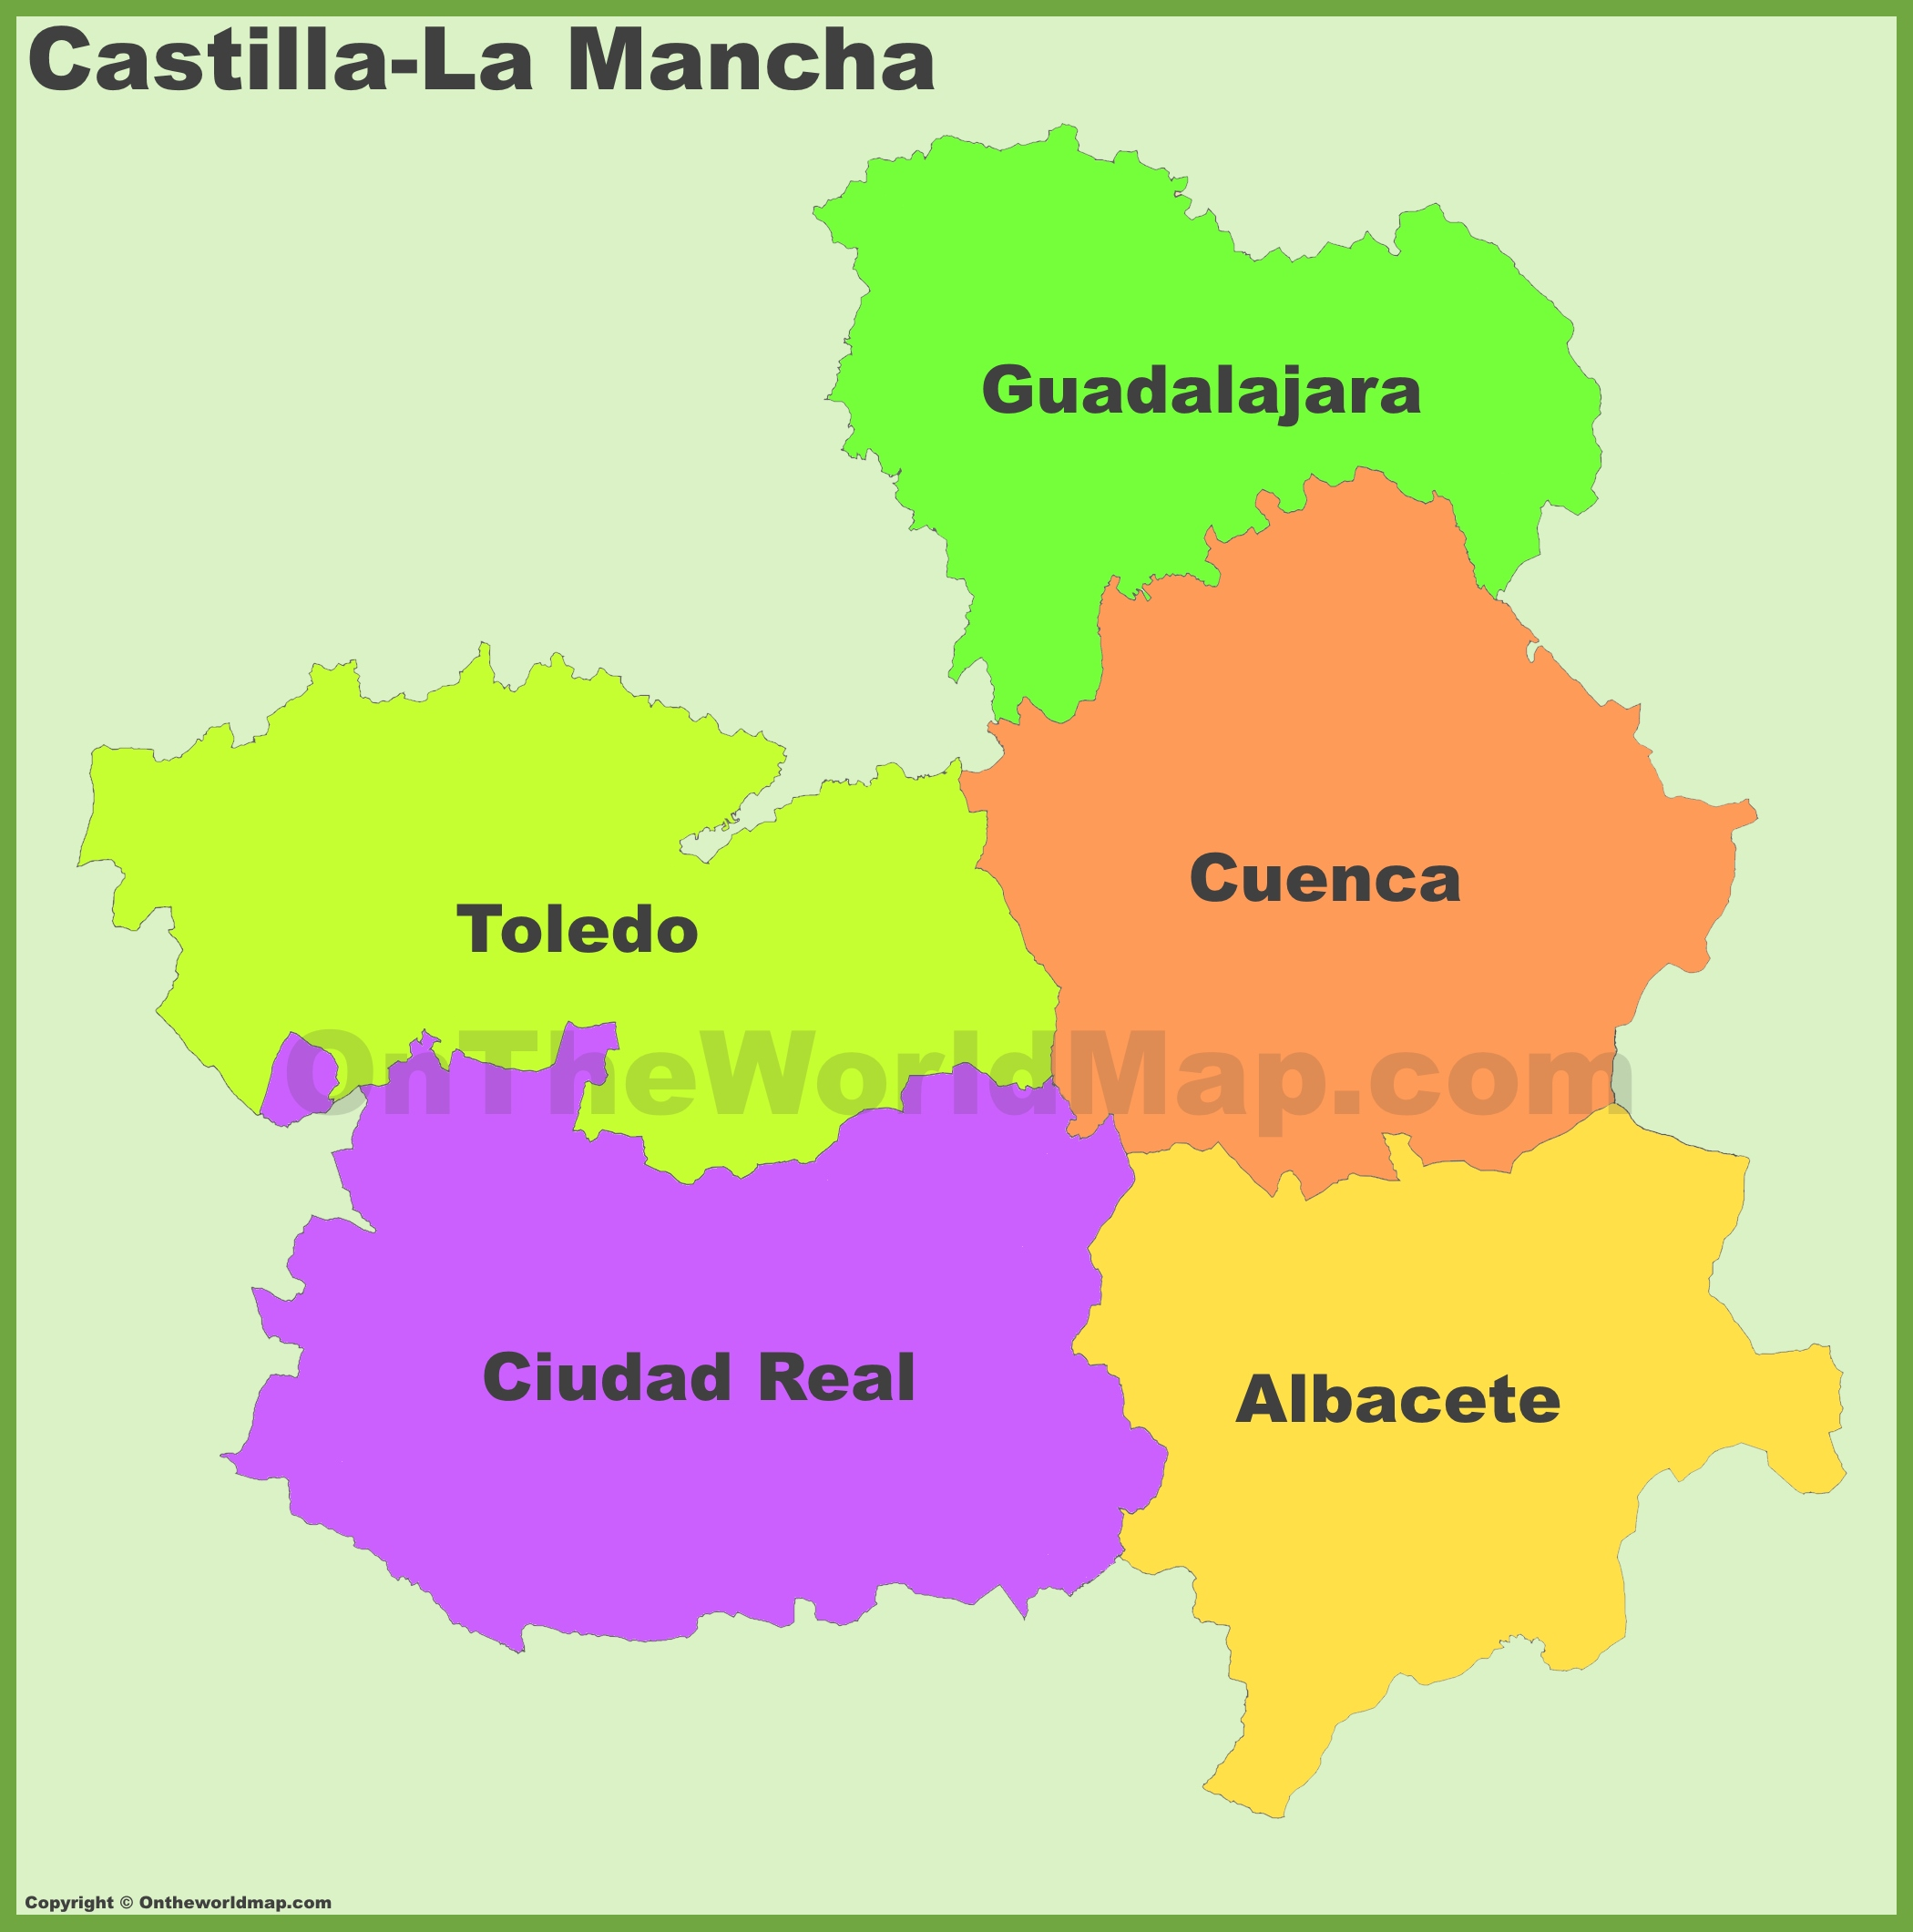 CastillaLa Mancha provinces map